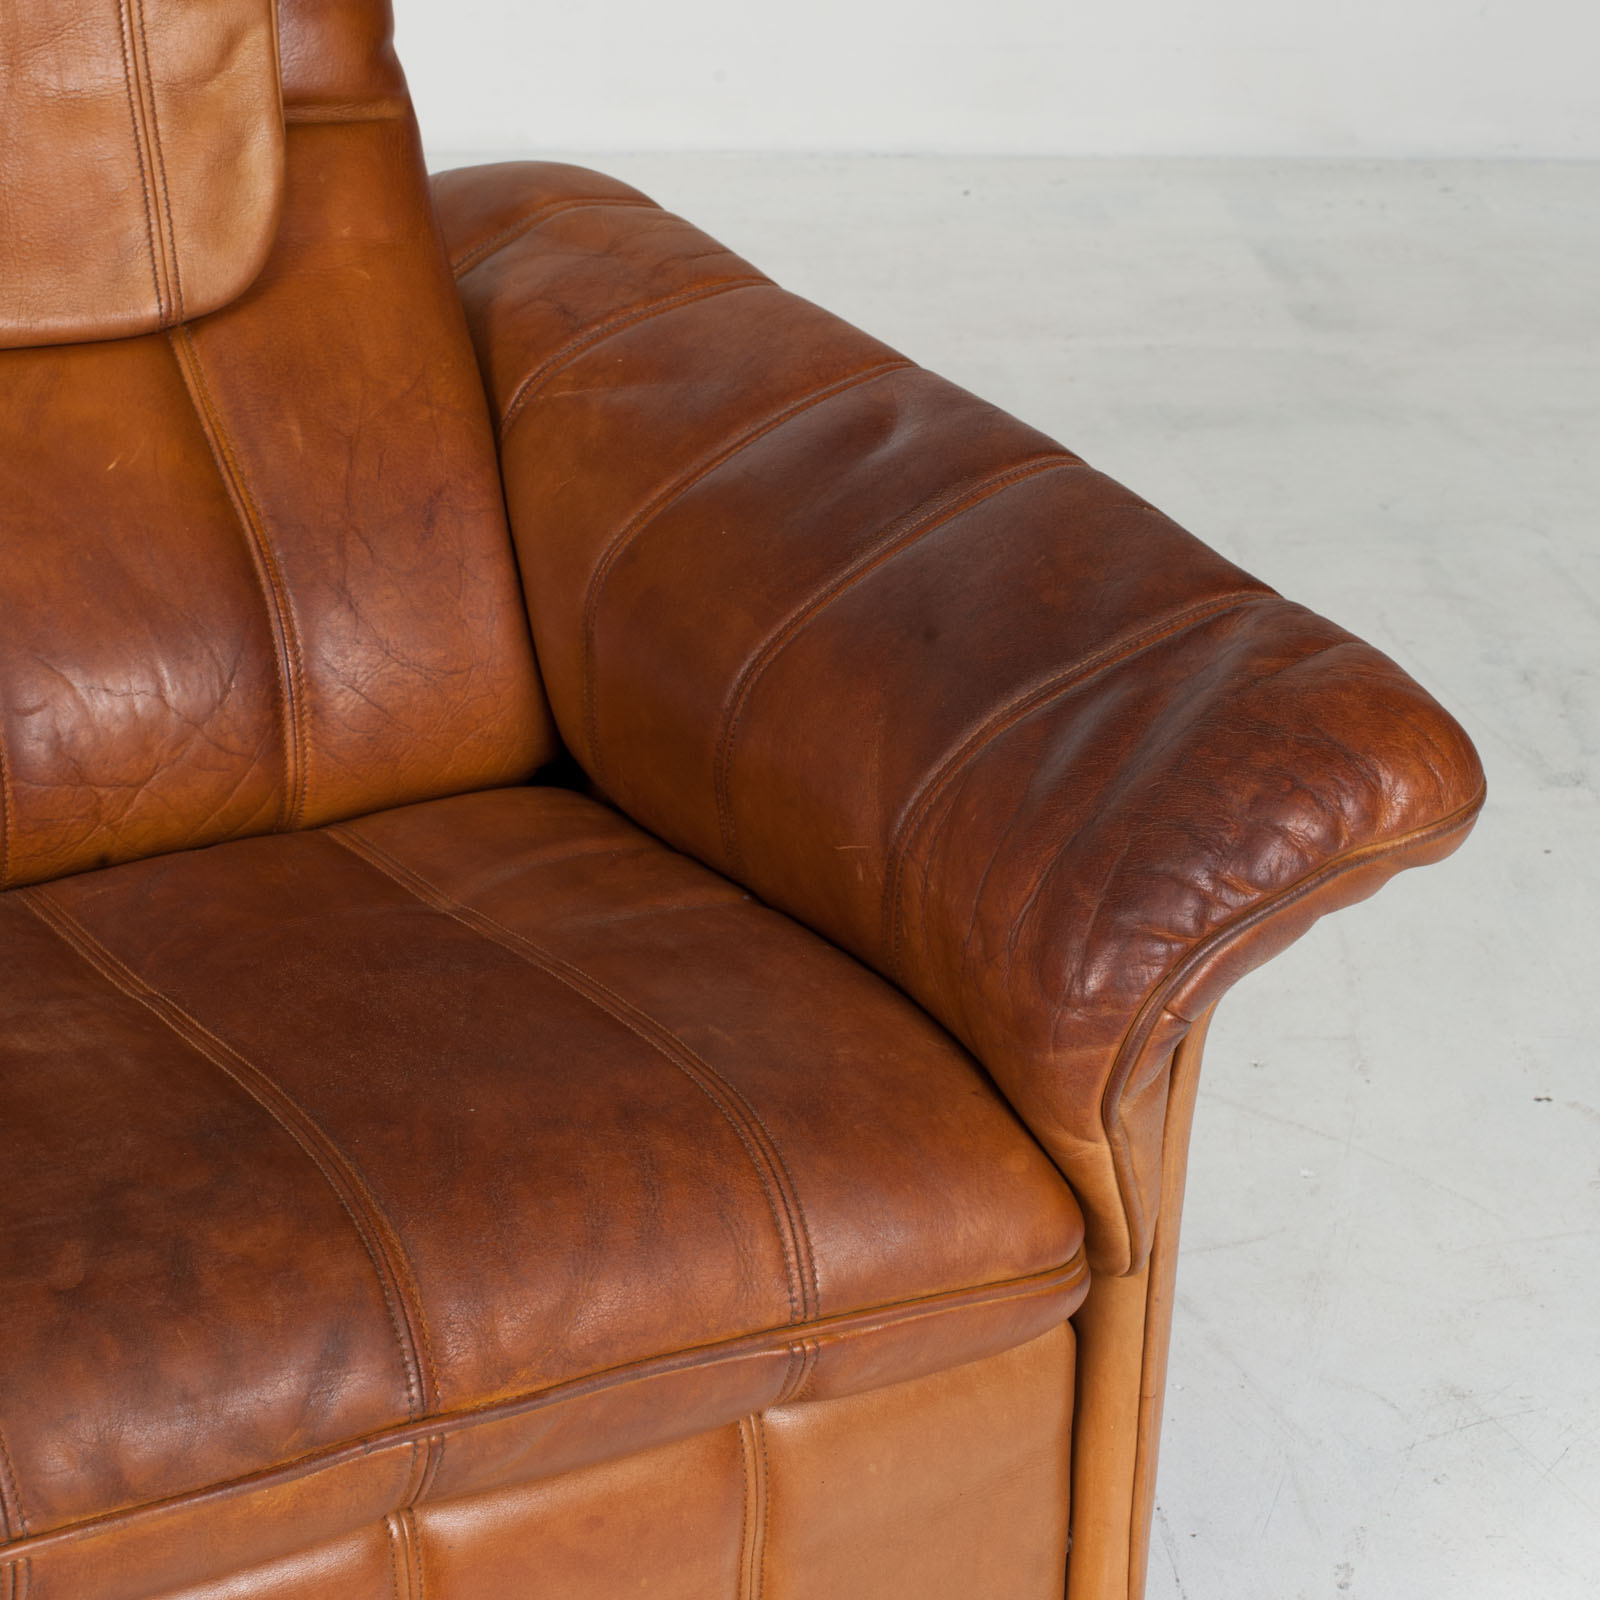 2 Seat Sofa By De Sede In Tan Leather 1970s Switzerland 07